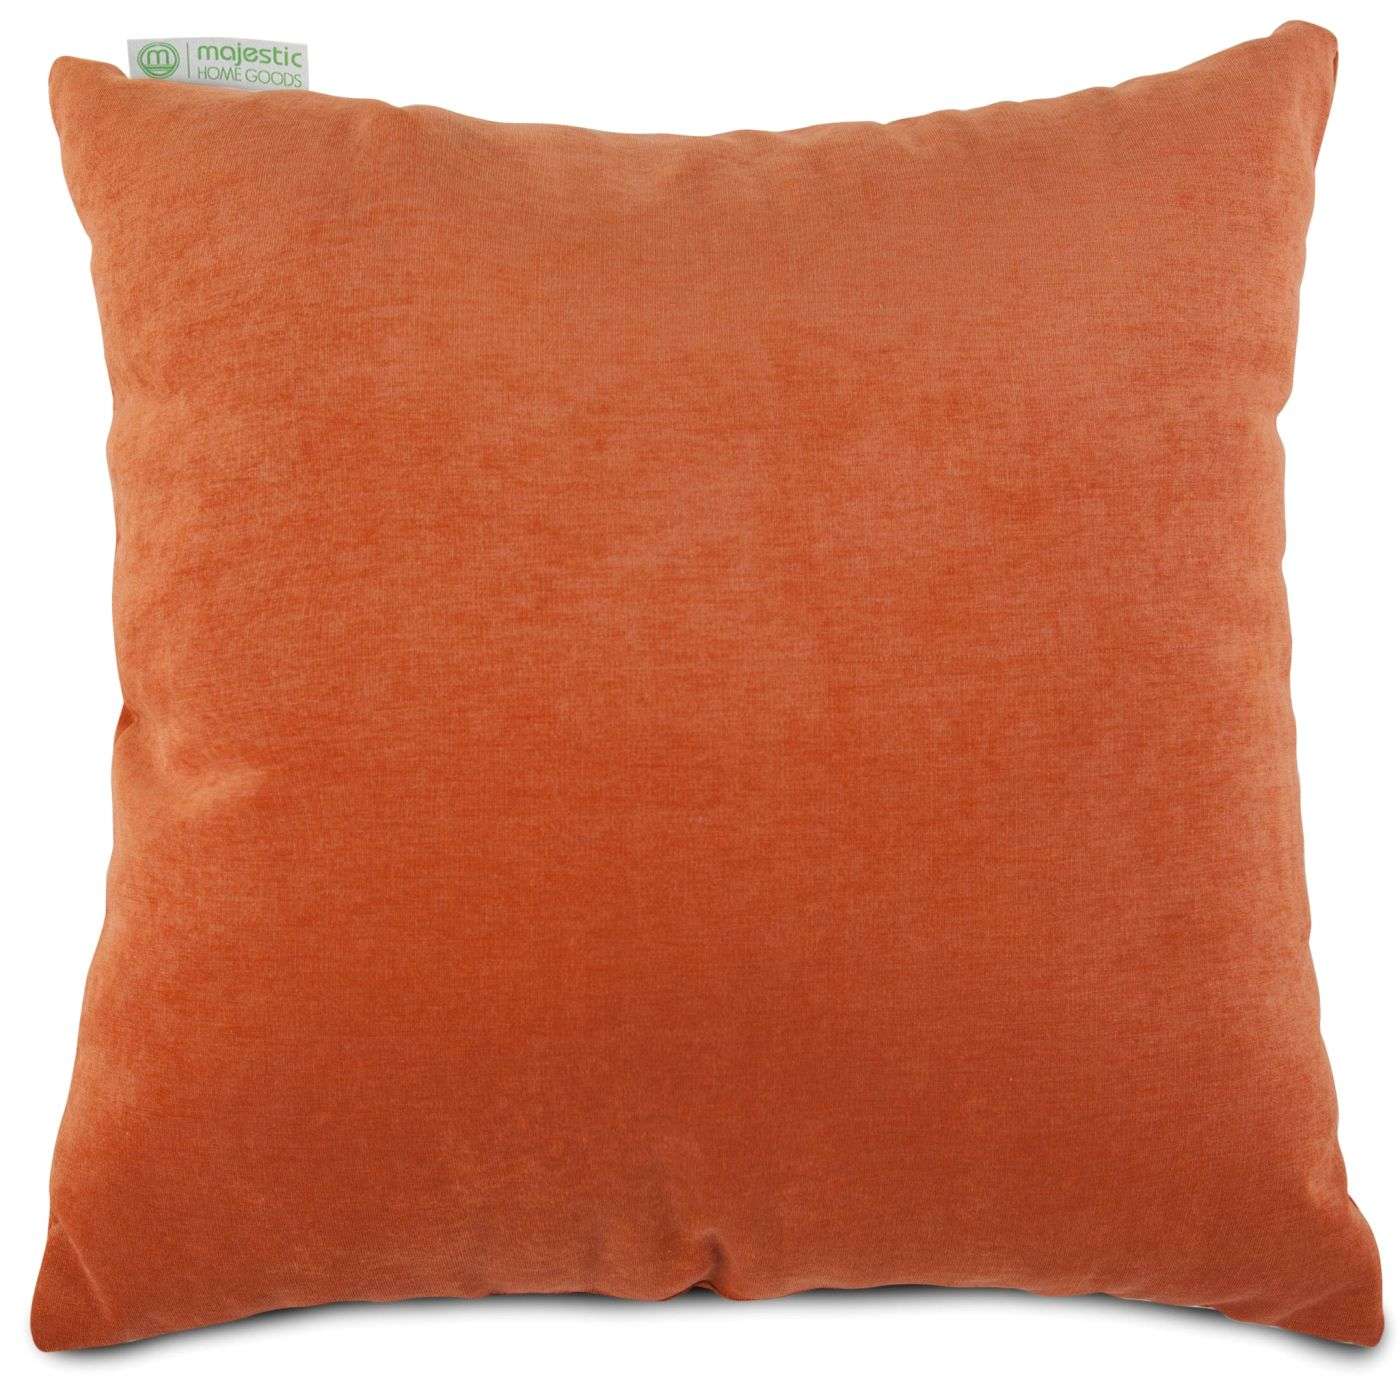 Oversized Decorative Pillow : Majestic Home Villa Orange Extra Large Pillow 85907260924. Only $47.60 at Contemporary Furniture ...